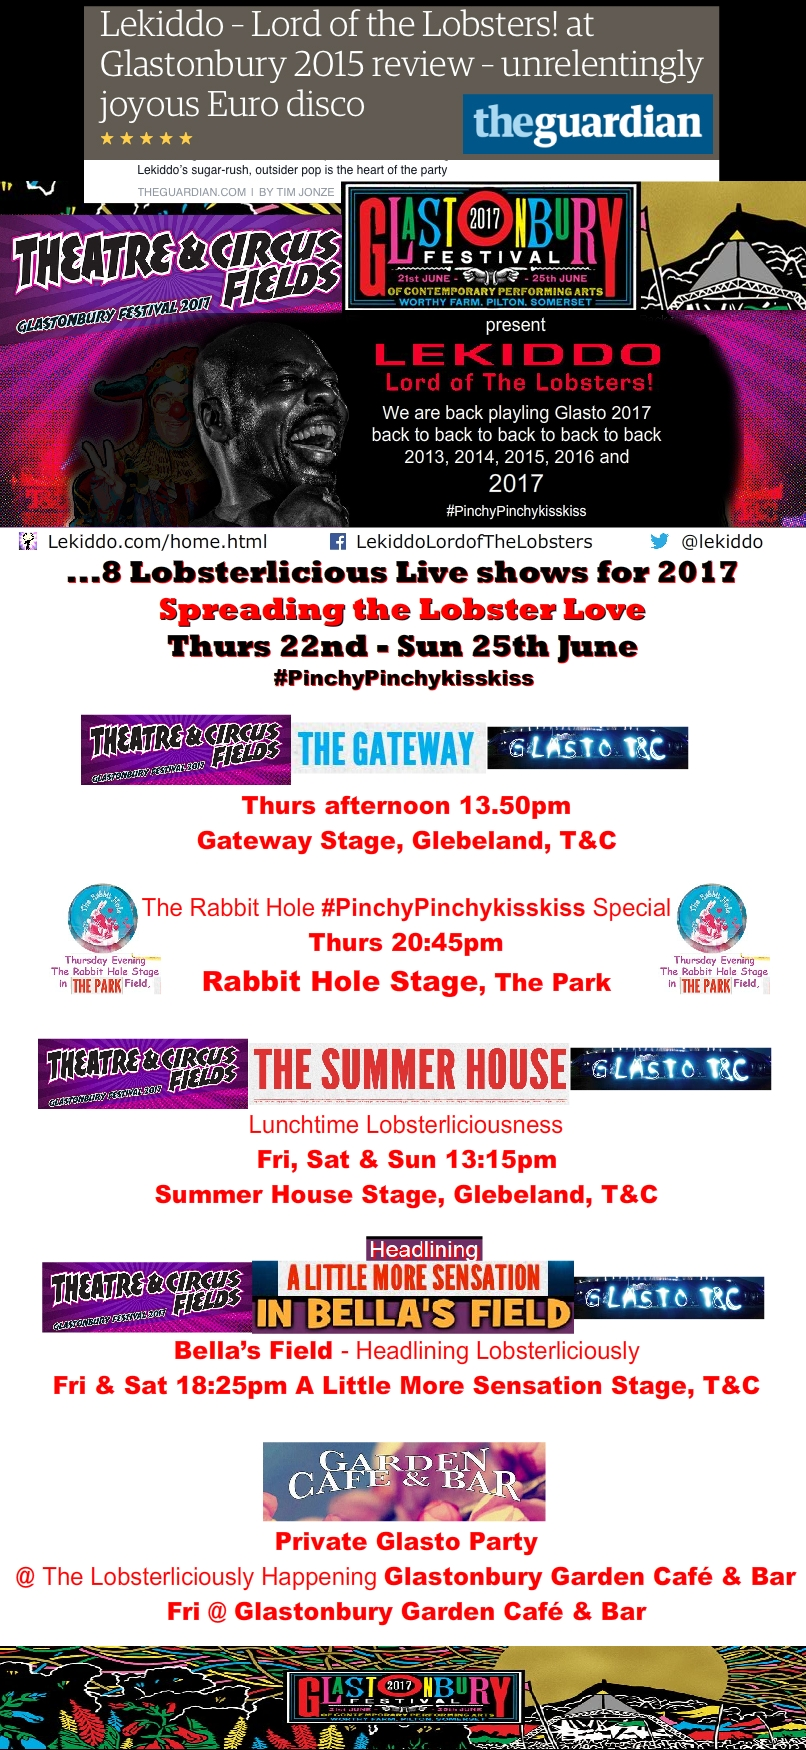 LEKIDDO - Lord of The Lobsters! returns to Glastonbury Festival 2017 with 8 Lobsterlicious live shows #PinchyPinchykisskiss